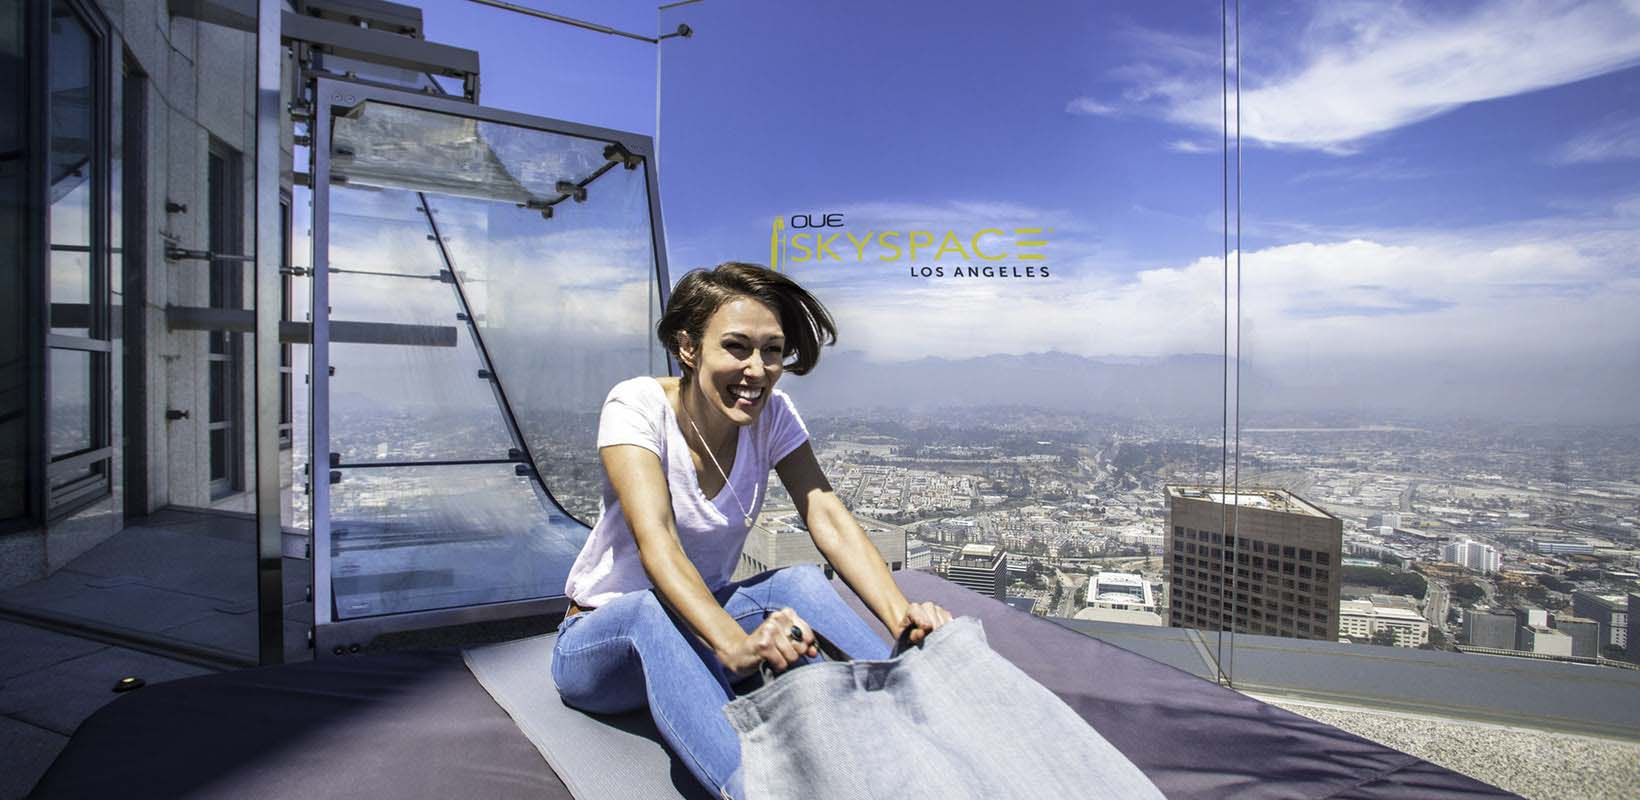 OUE Skyspace LA Sip and Slide experience